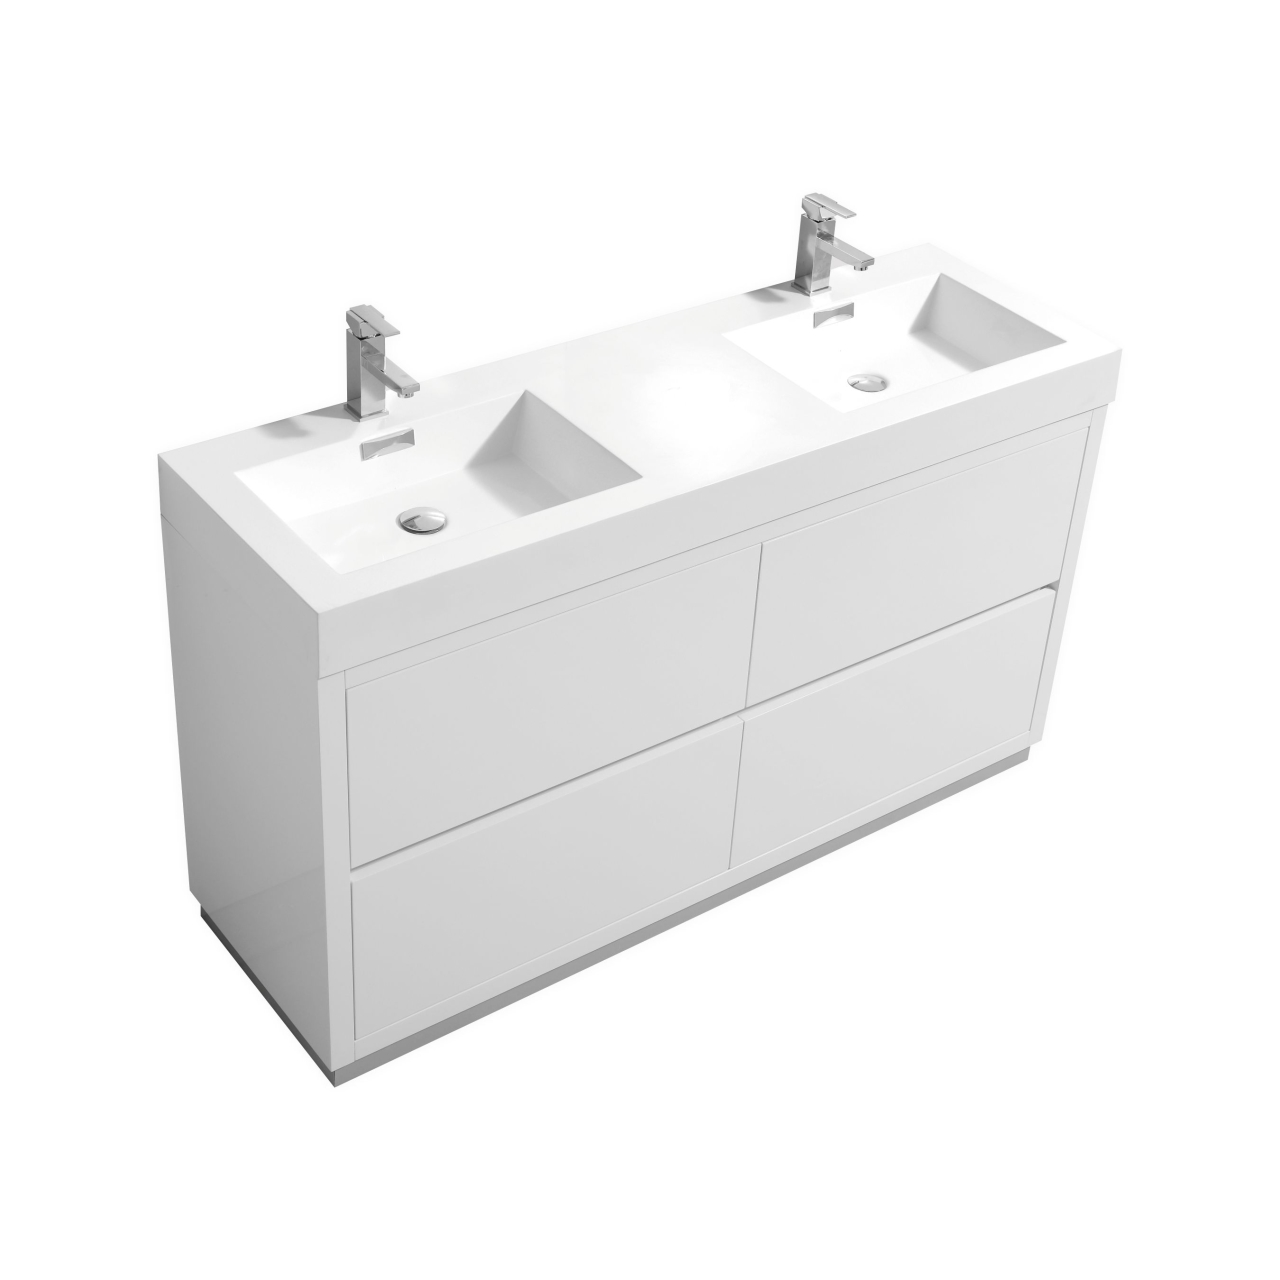 Bliss 60 High Gloss White Double Sink Floor Mount